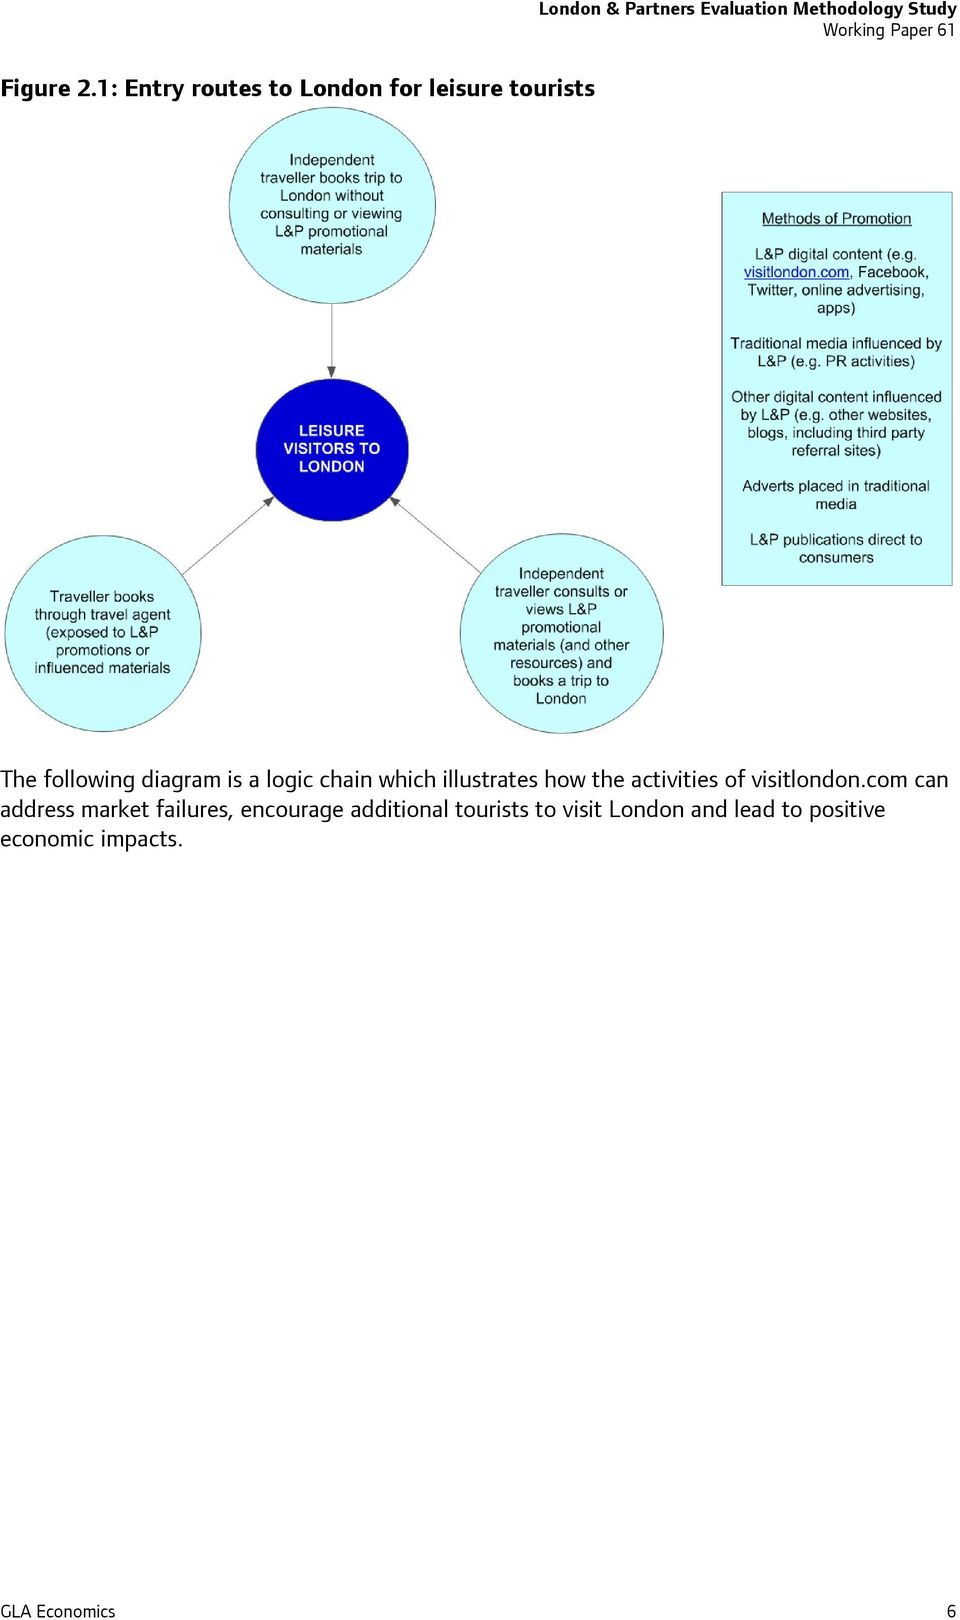 Methodology Study The following diagram is a logic chain which illustrates how